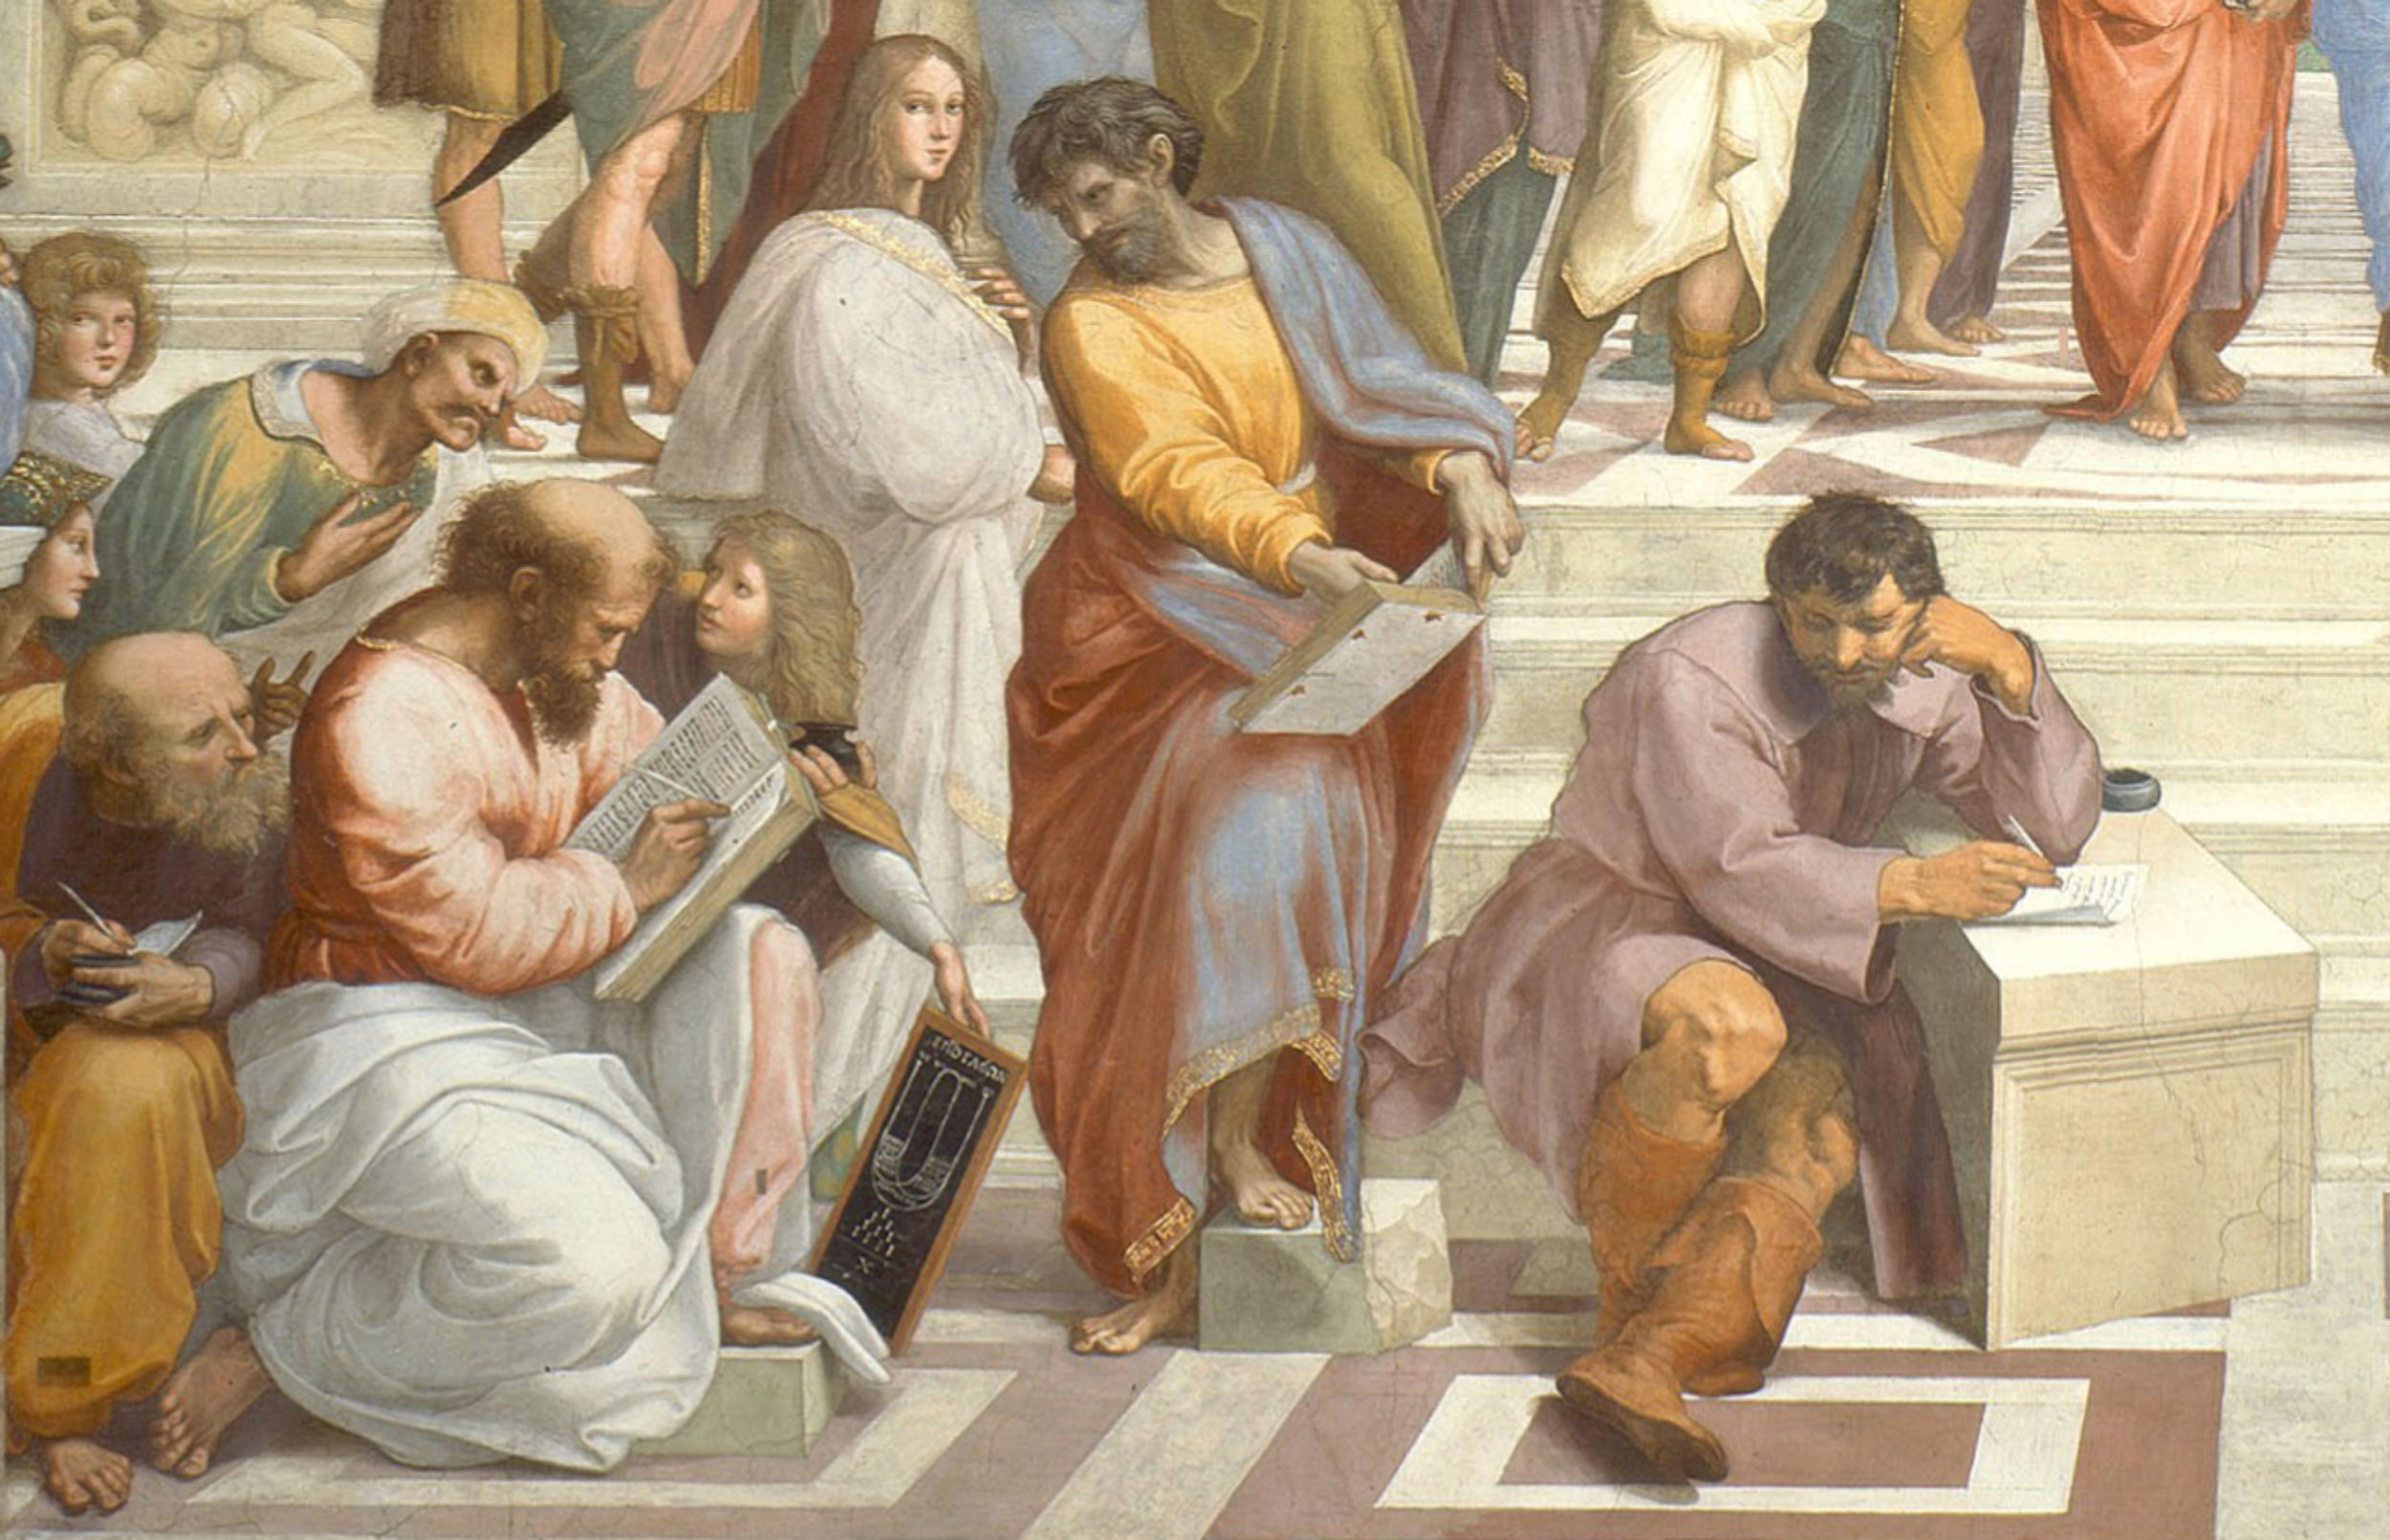 """Section of """"School of Athens"""" 1512 fresco by Raphael the Sanzio in the Apostolic Palace Rome, Italy.Vatican Museum.PD-Art"""